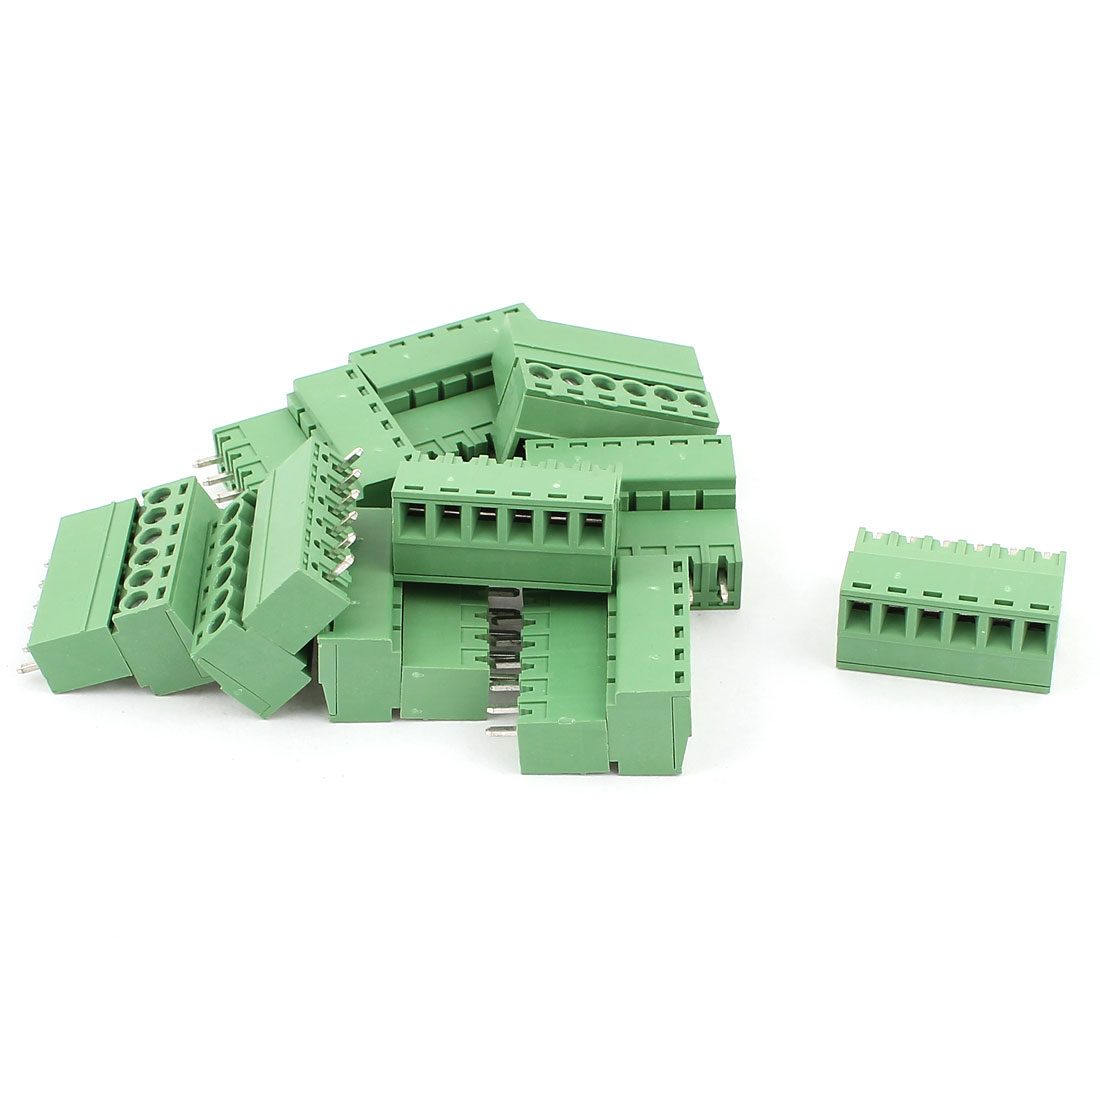 10 Pcs AC 300V 8A 6 Pins PCB Screw Terminal Block Connector 3.81mm Pitch Green